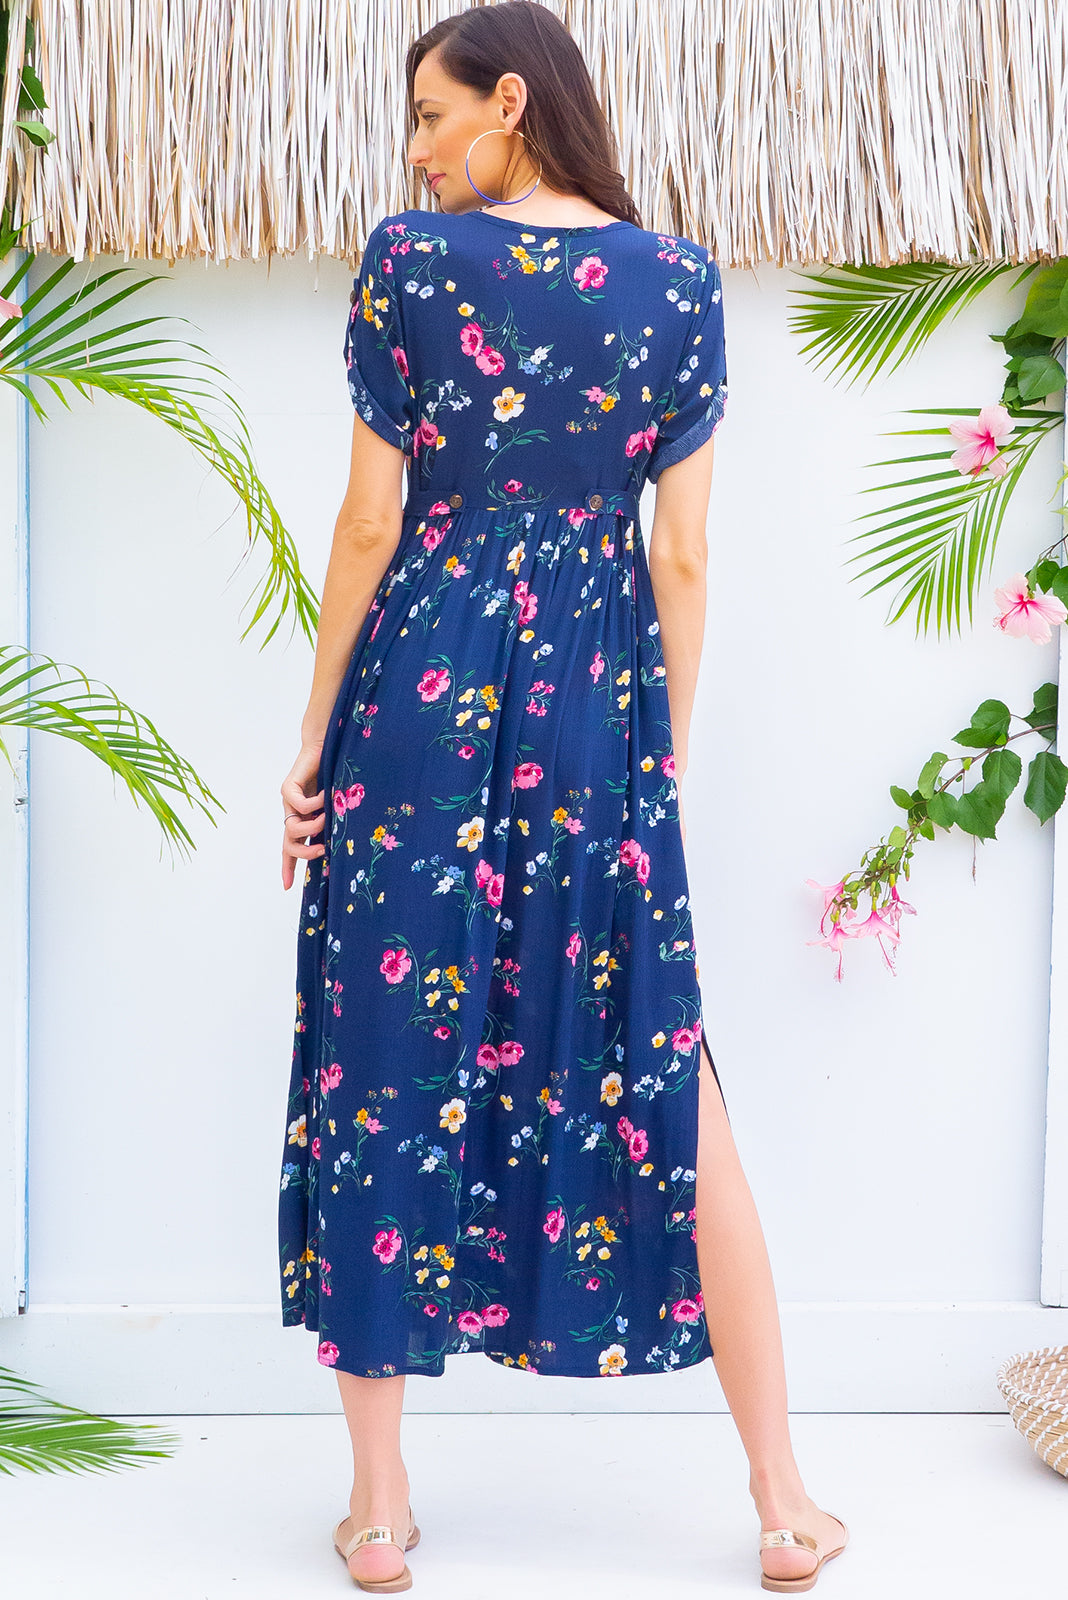 Rocco Chelsea Navy button front maxi dress with roll up tab sleeves, deep side pockets, adjustable tab waist and a soft loose fit comes in a bright navy and multicoloured floral print on crinkle textured 100% rayon